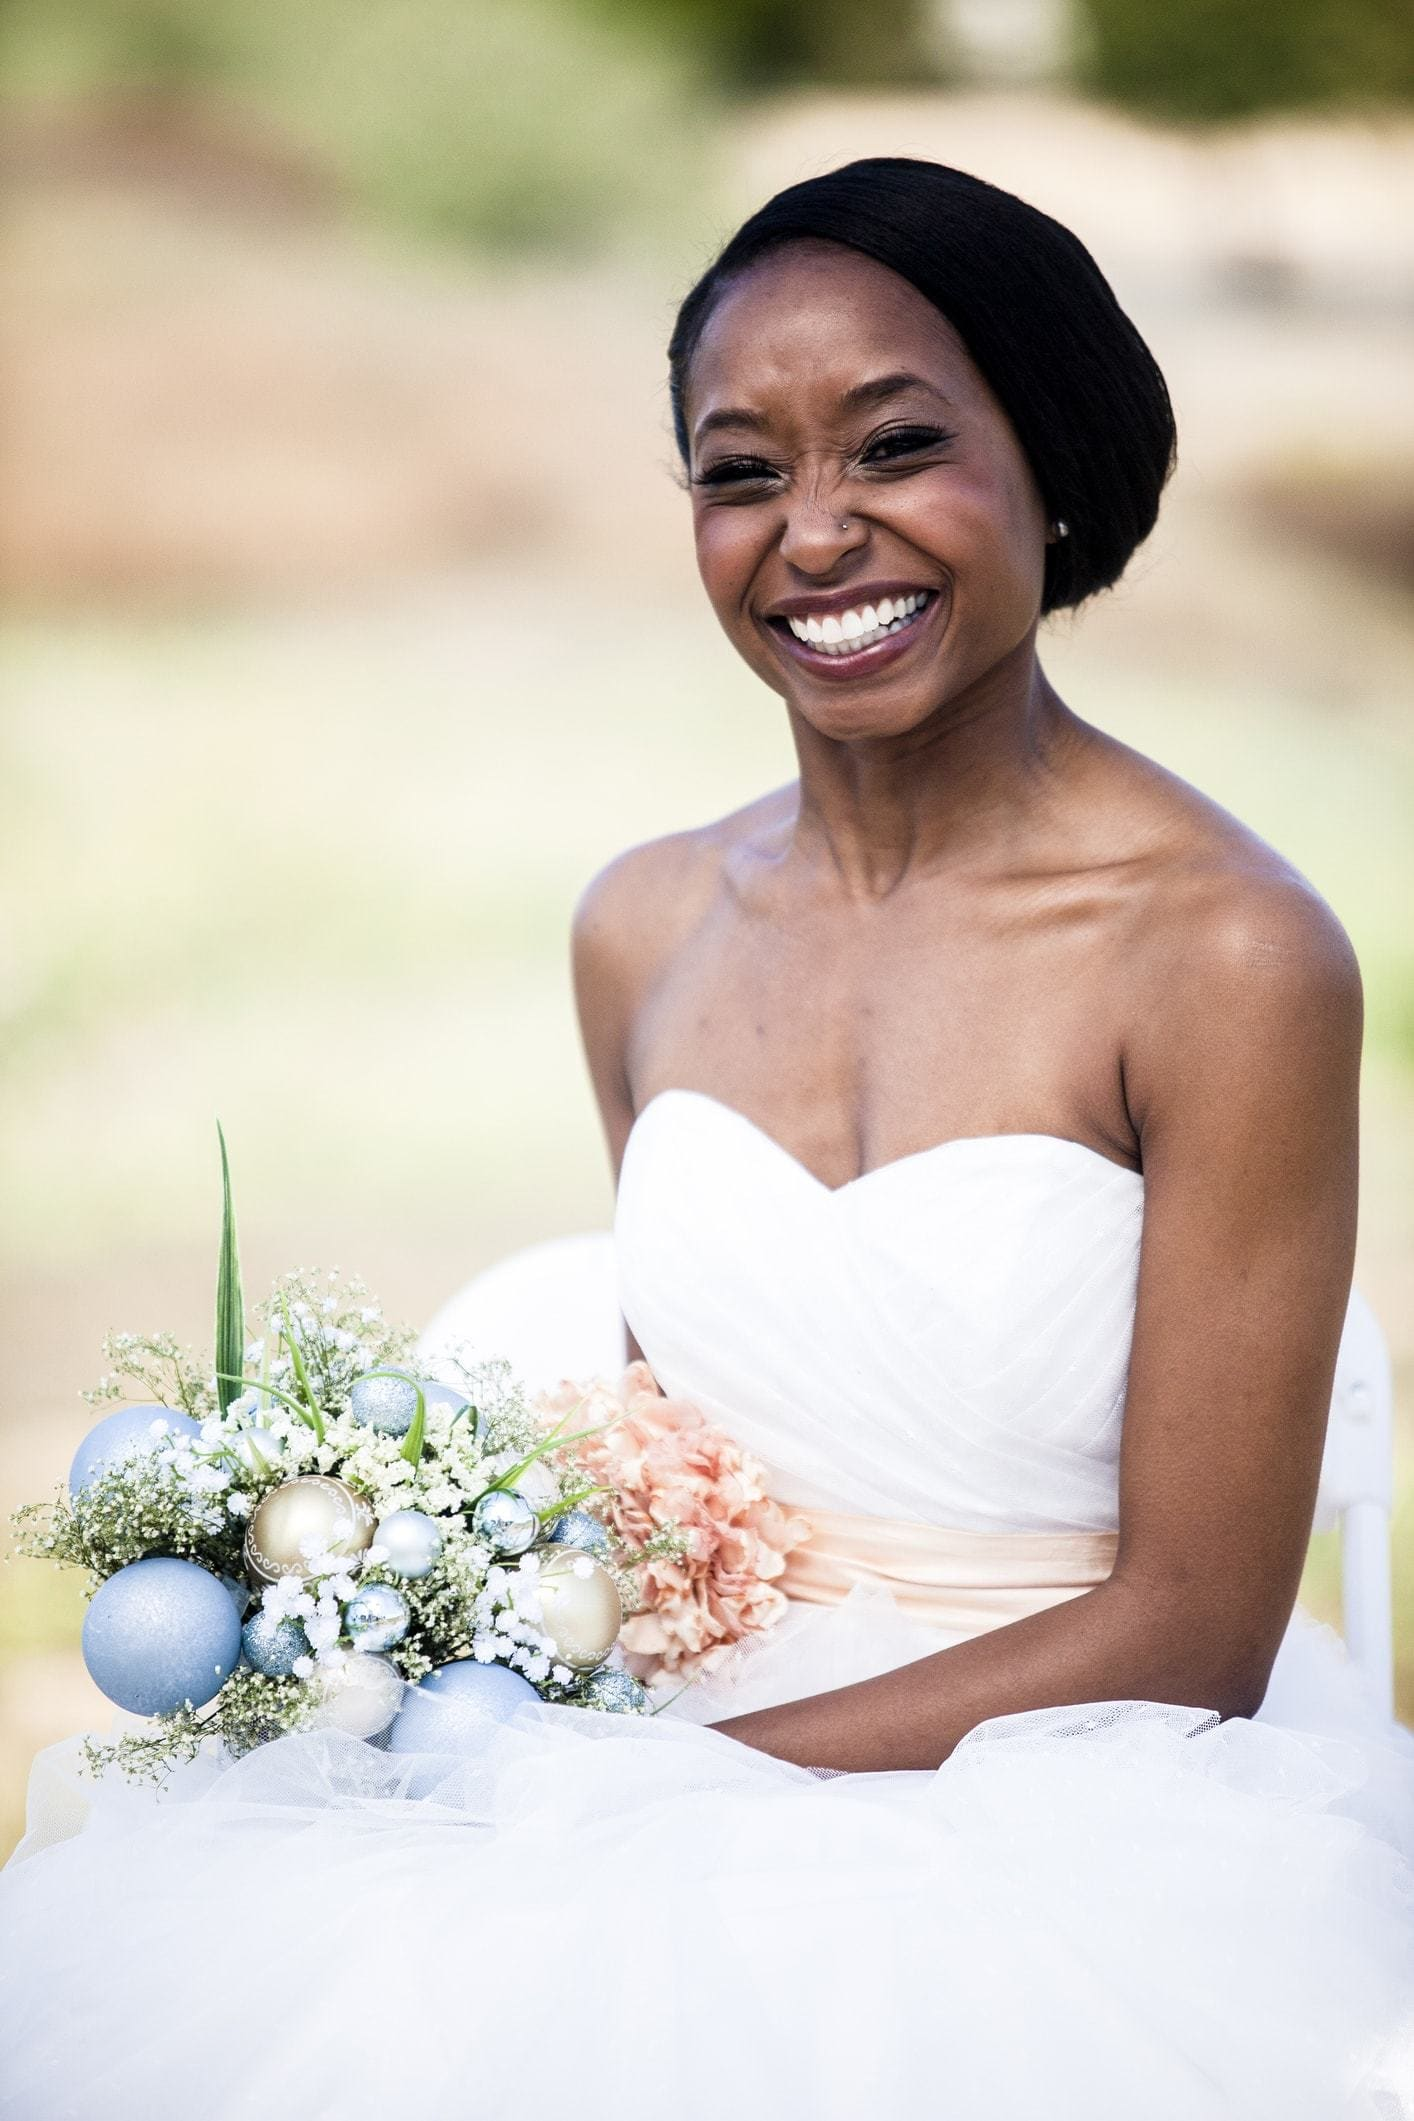 2018 Top Wedding Hairstyles For Amazing Bridal Style! 6